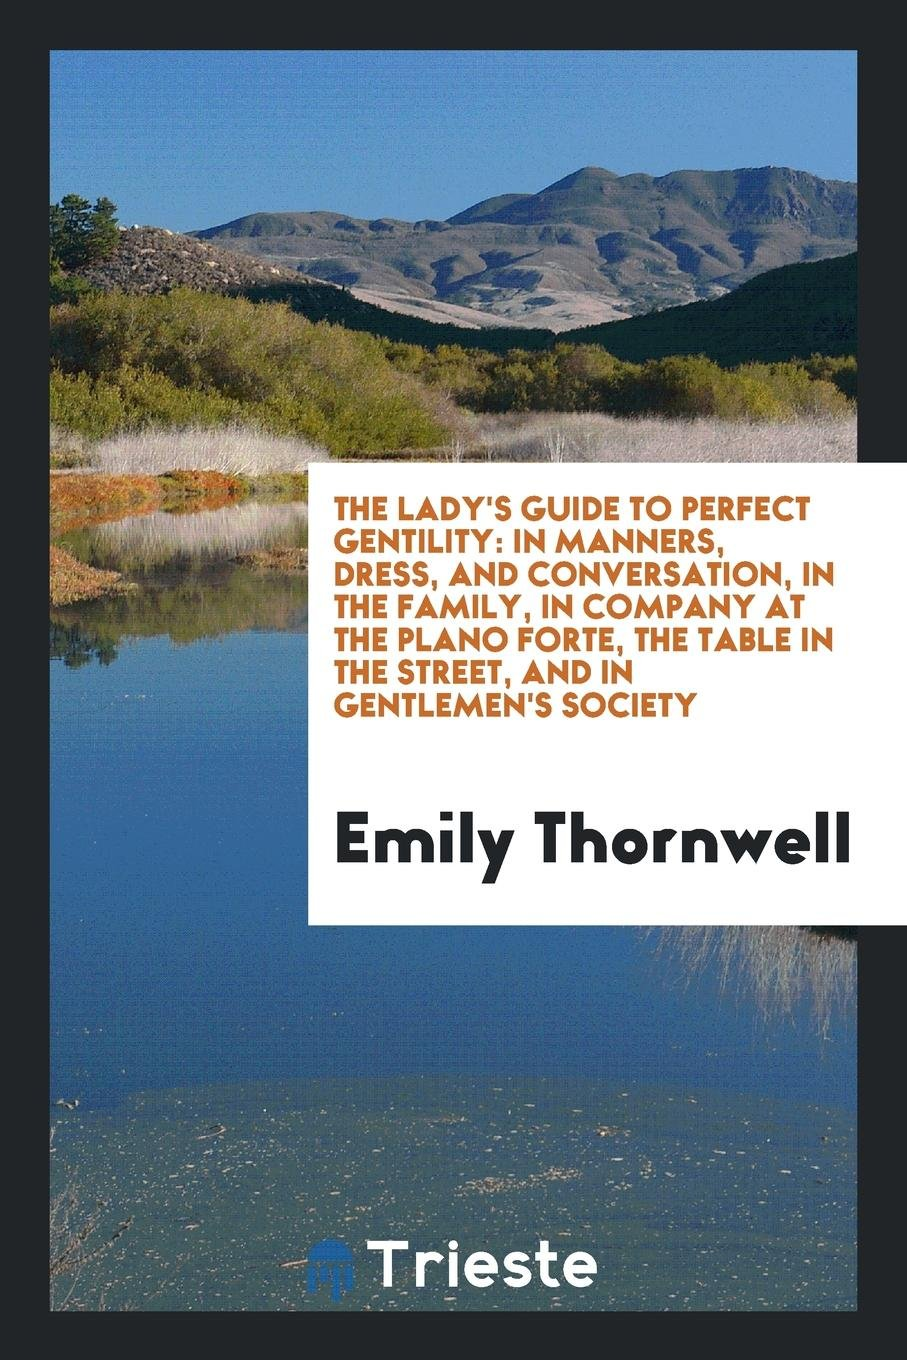 Download The Lady's Guide to Perfect Gentility: In Manners, Dress, and Conversation, in the Family, in Company at the Plano Forte, the Table in the Street, and in Gentlemen's Society pdf epub